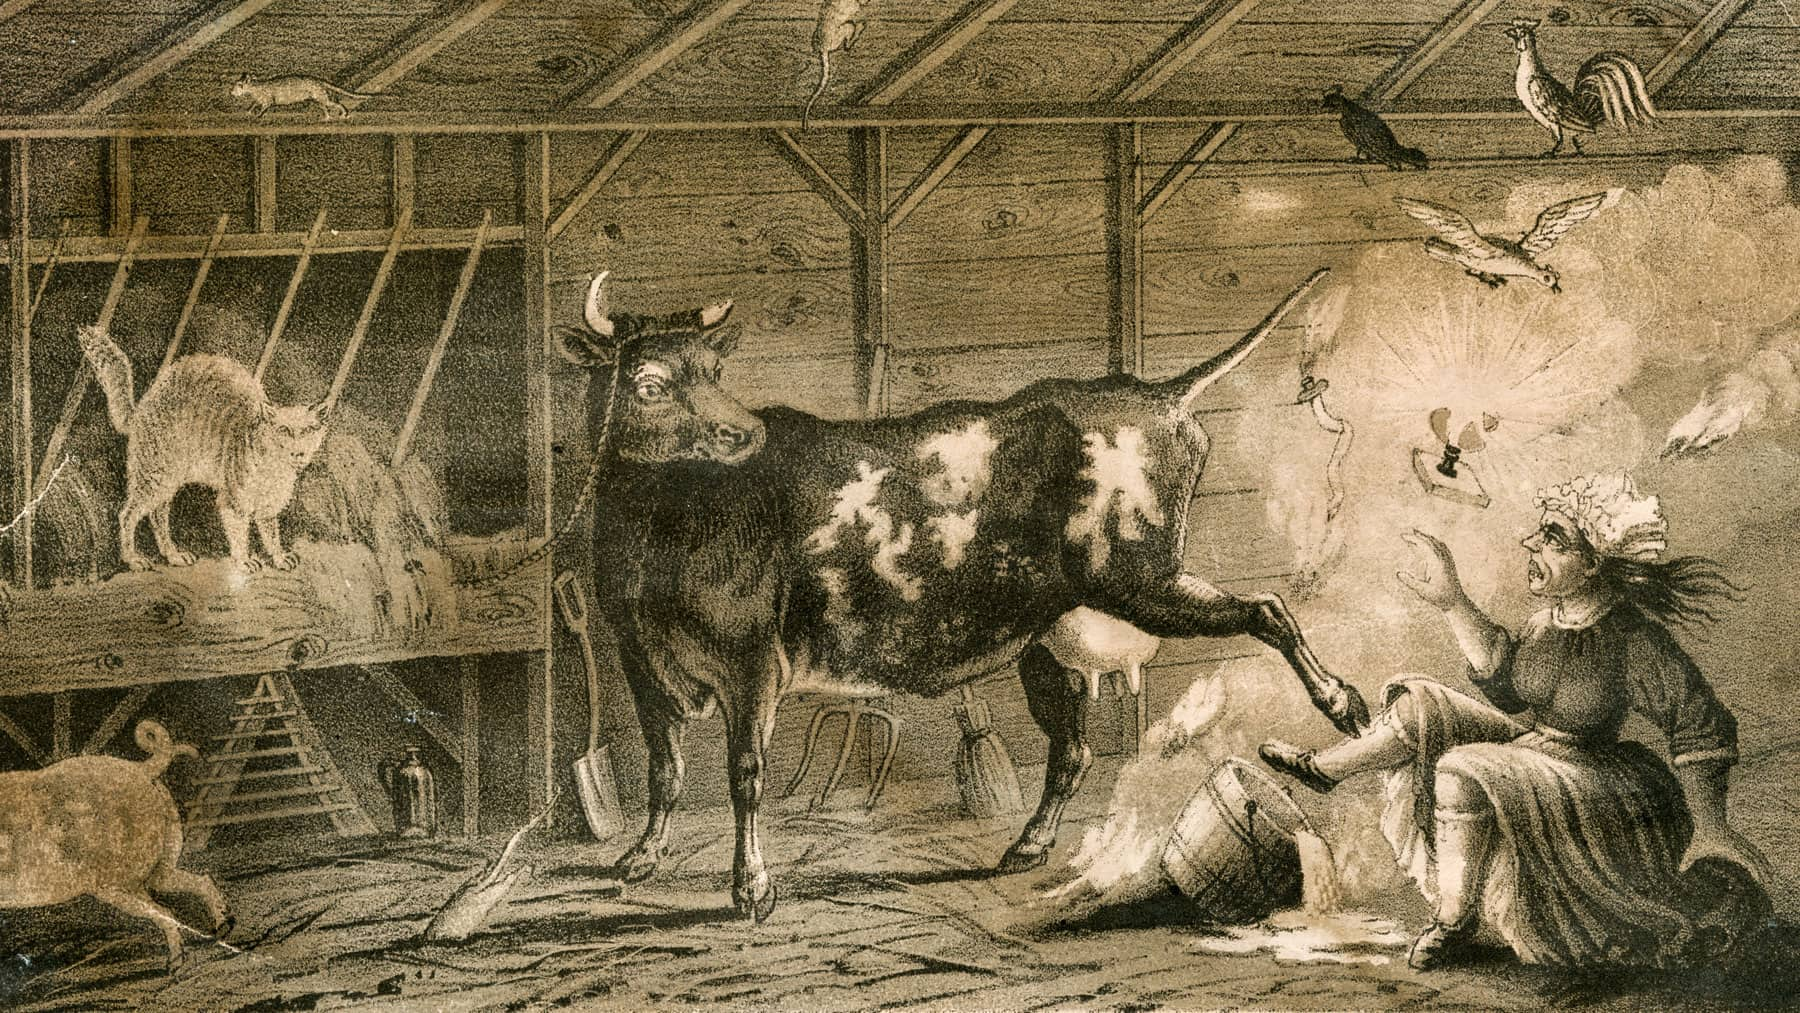 Caricature illustration of Mrs. O'Leary in her barn as her cow kicks over a kerosene lantern